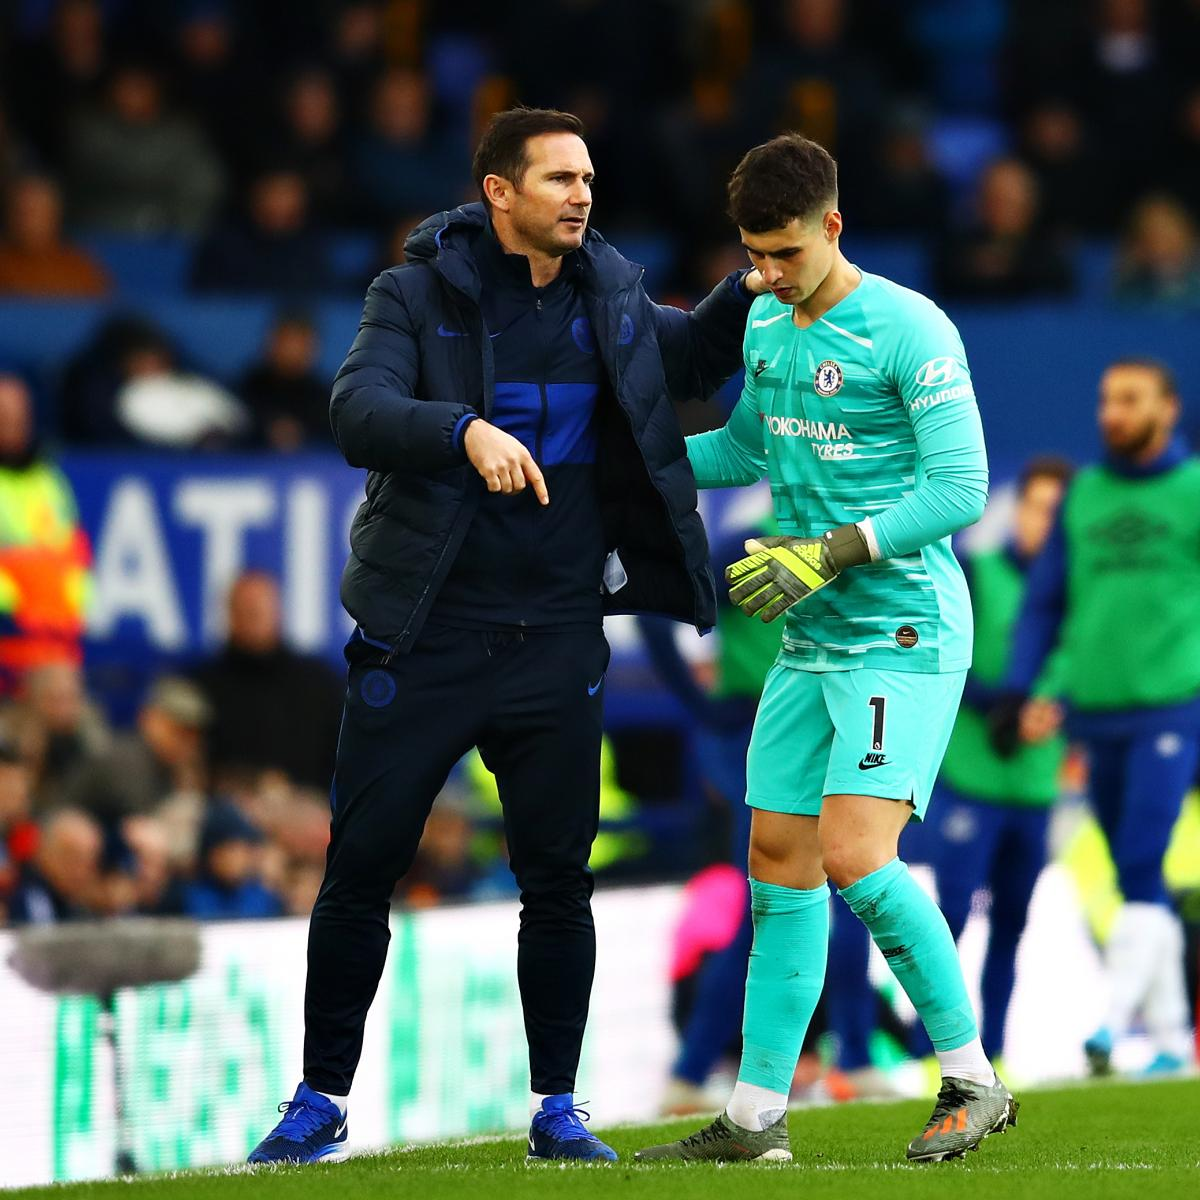 Chelsea Boss Frank Lampard on Decision to Drop Kepa: 'I Just Expect Reactions'